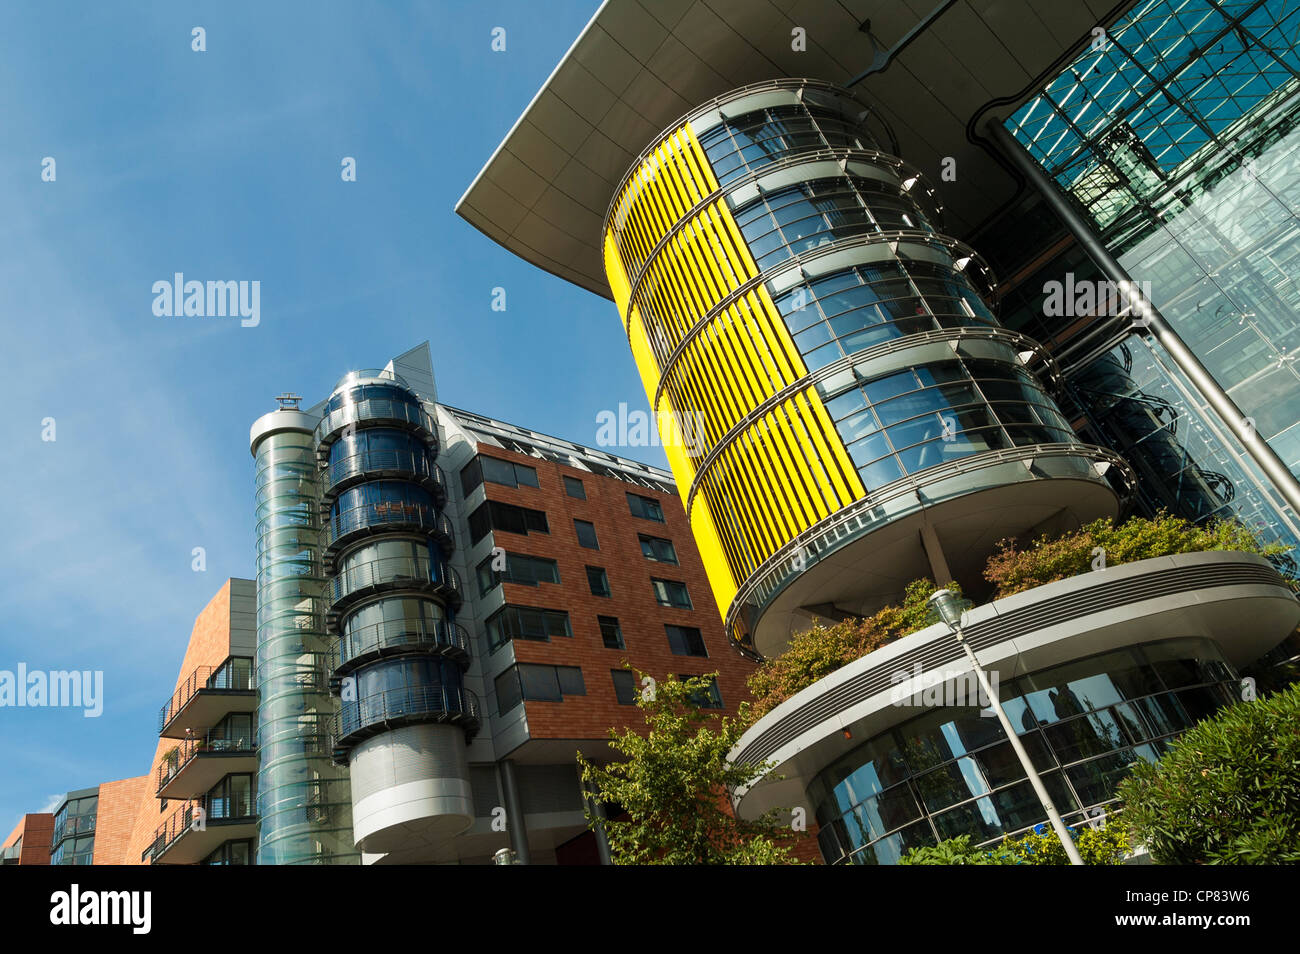 Modern architecture of the Daimler office buildings & apartments in Potsdamer Platz, Berlin, Germany - Stock Image